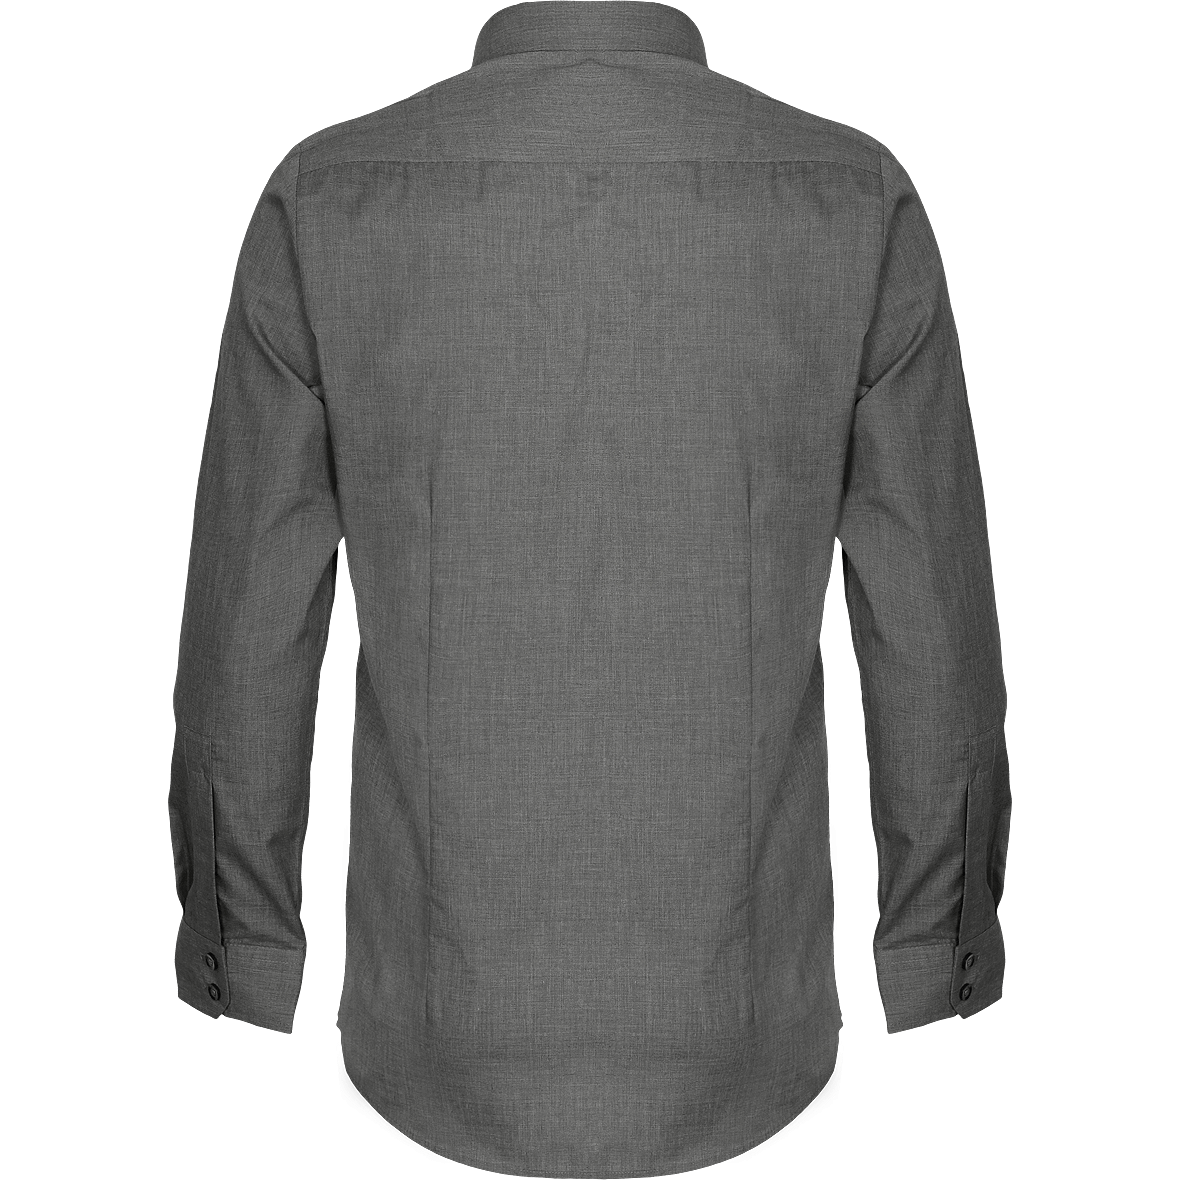 PRESTIGIO MEN's Newpoplin cross-dye roll sleeve shirt Men